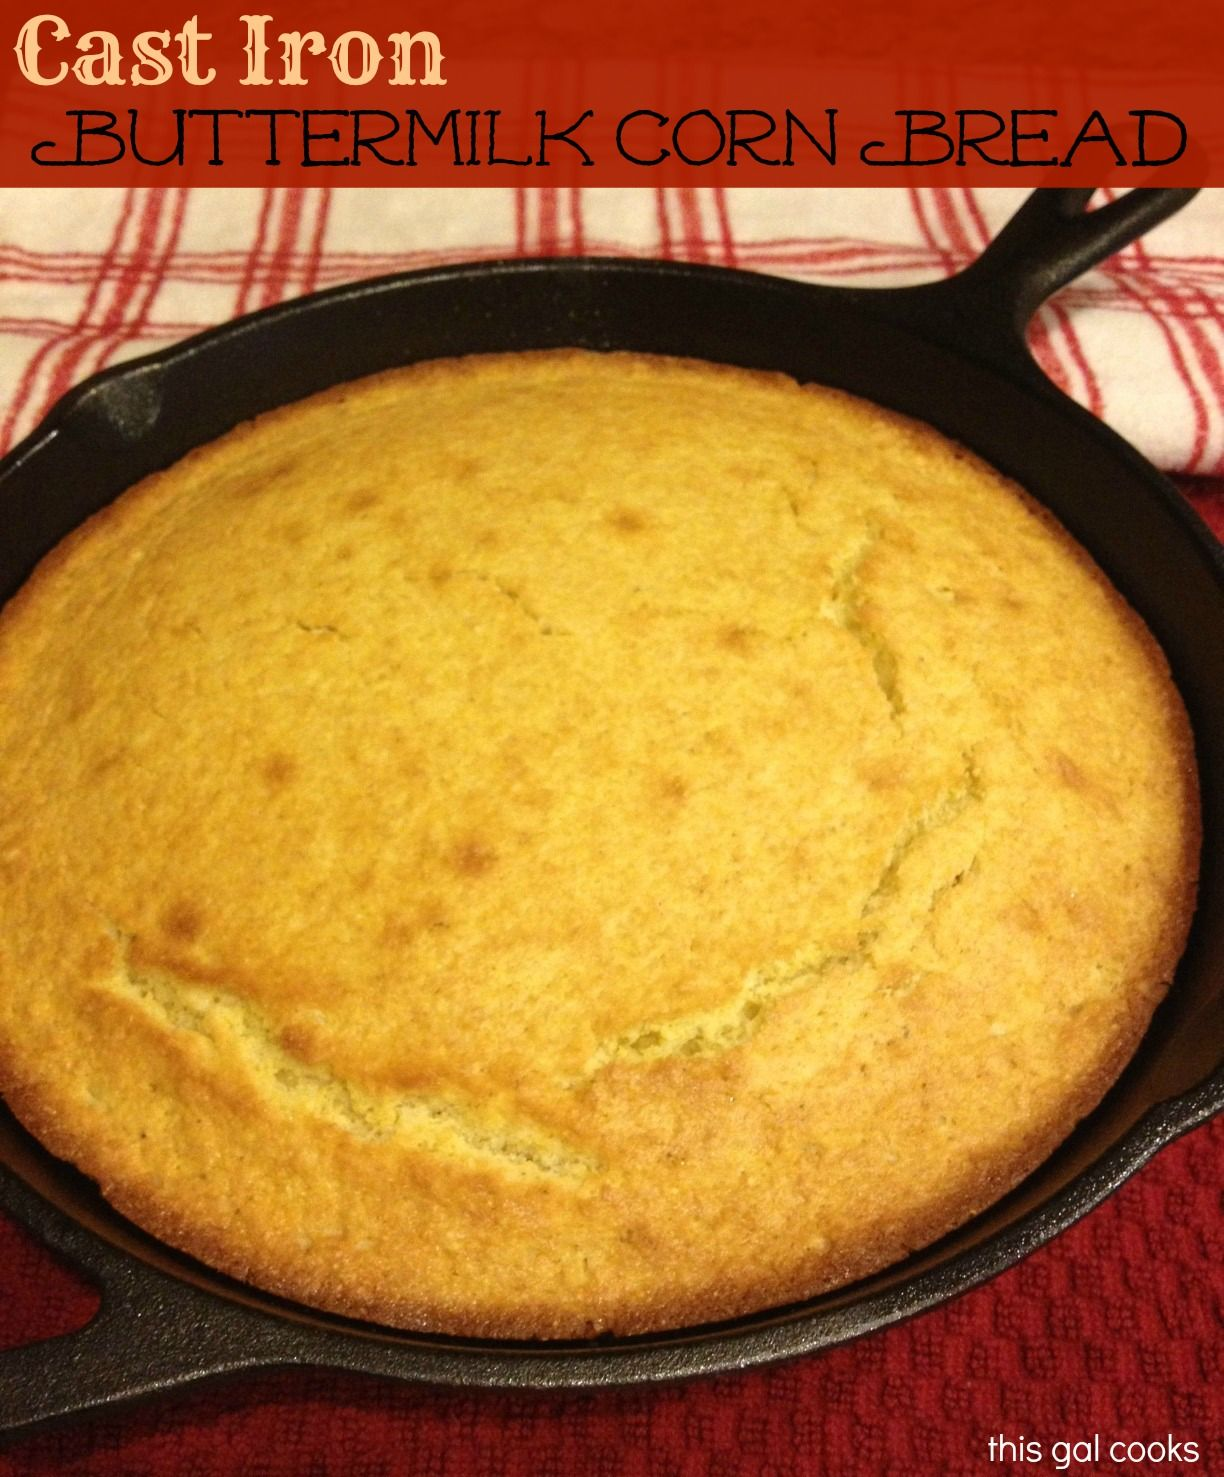 Cast Iron Buttermilk Cornbread Recipe Recipe Buttermilk Cornbread Corn Bread Recipe Cooking